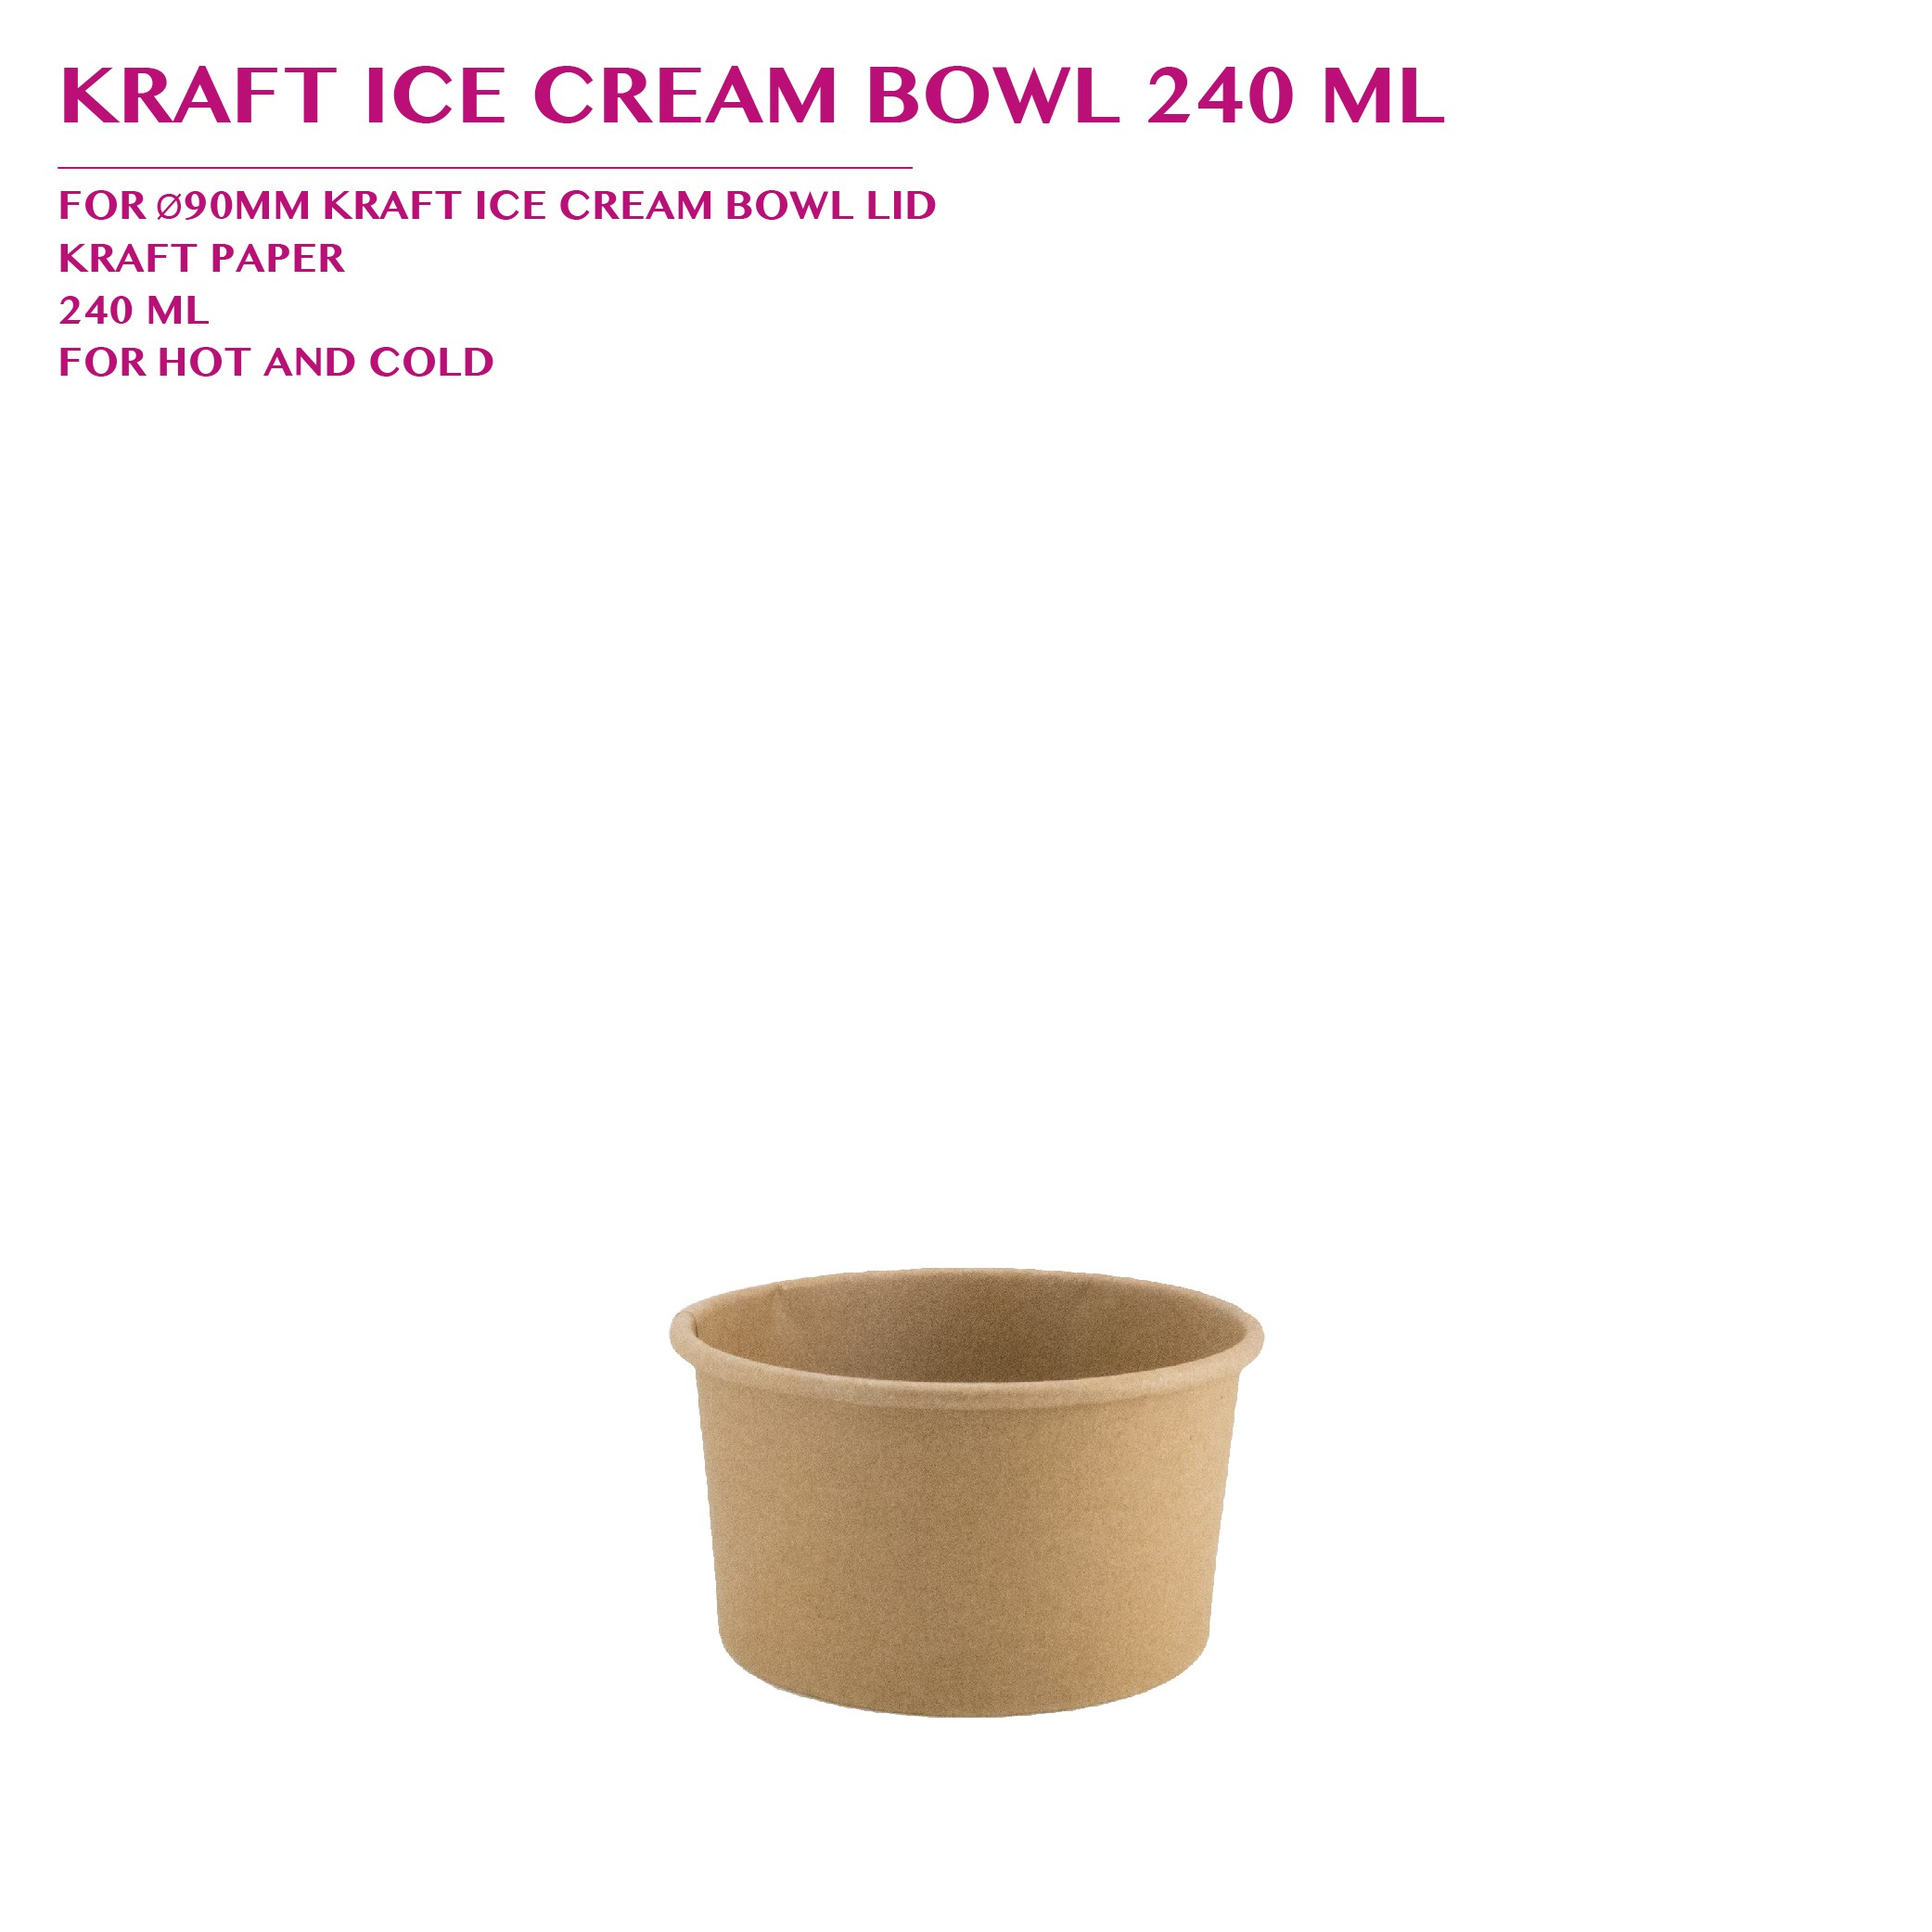 PRE-ORDER KRAFT ICE CREAM BOWL 240 ML PCS/CTN